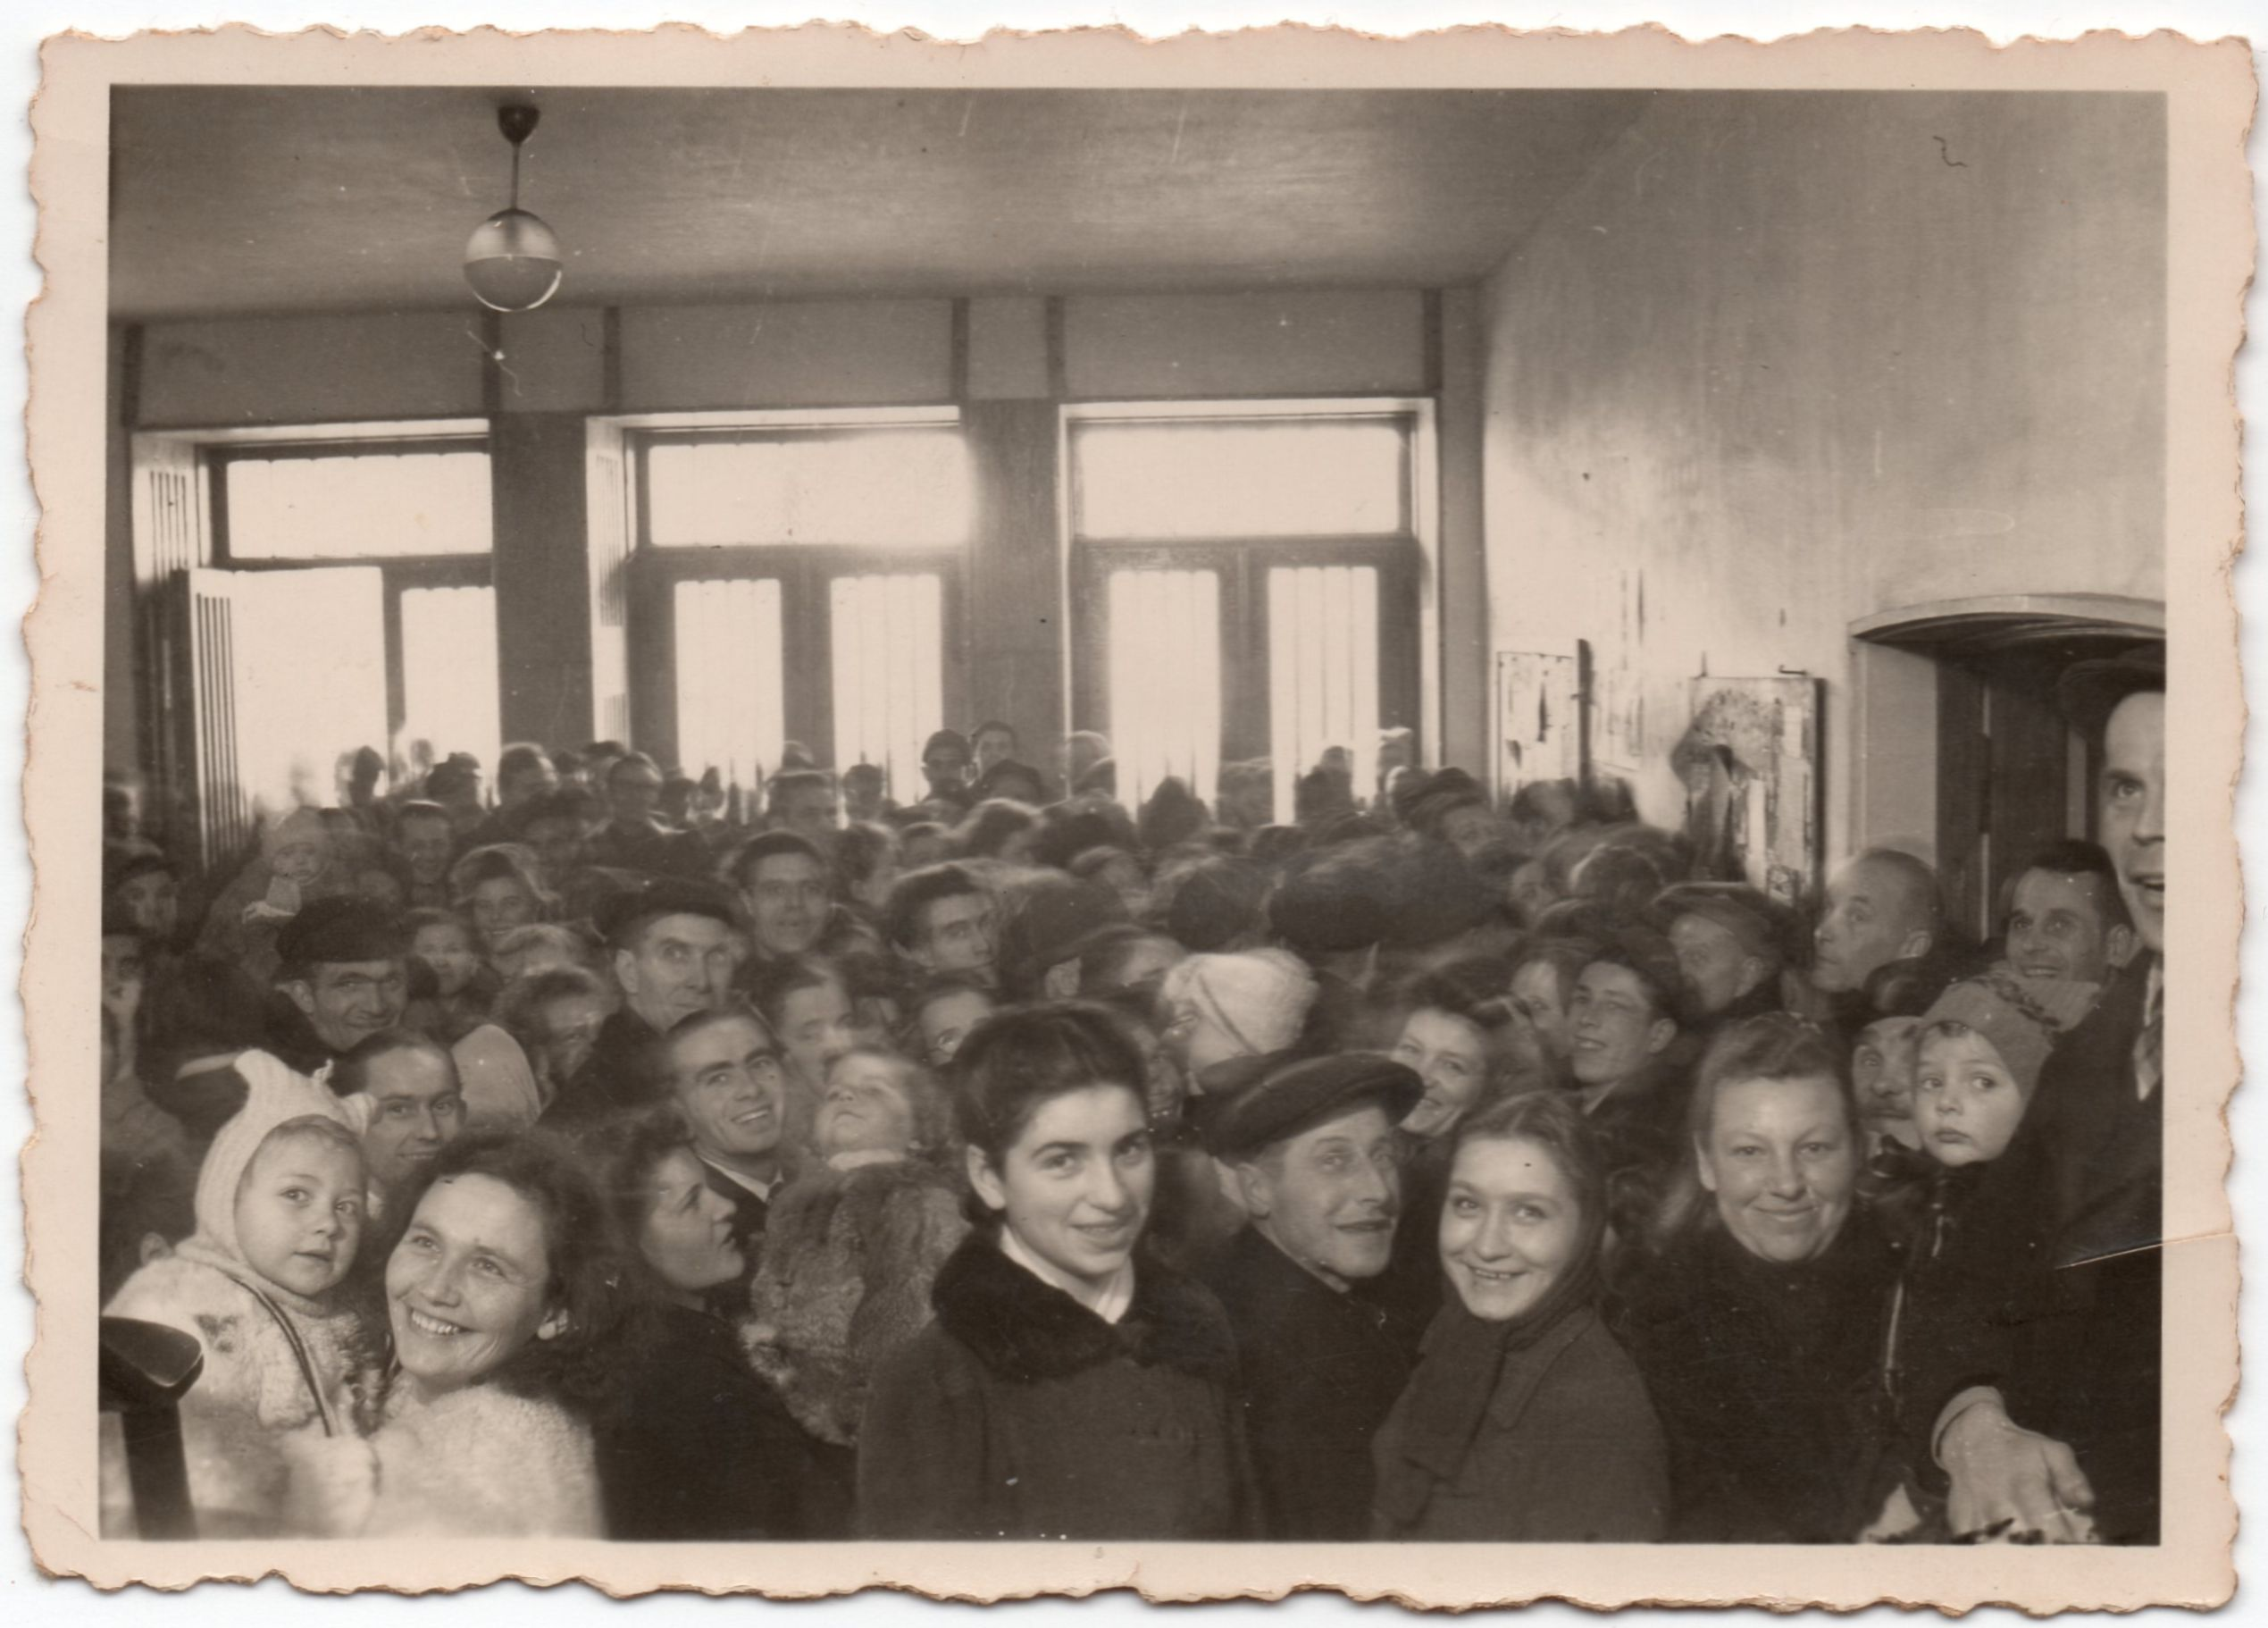 An  immigration hall packed with new immigrants. People fill the bottom of the photograph. The top half shows a plain room with  three large windows at the back.